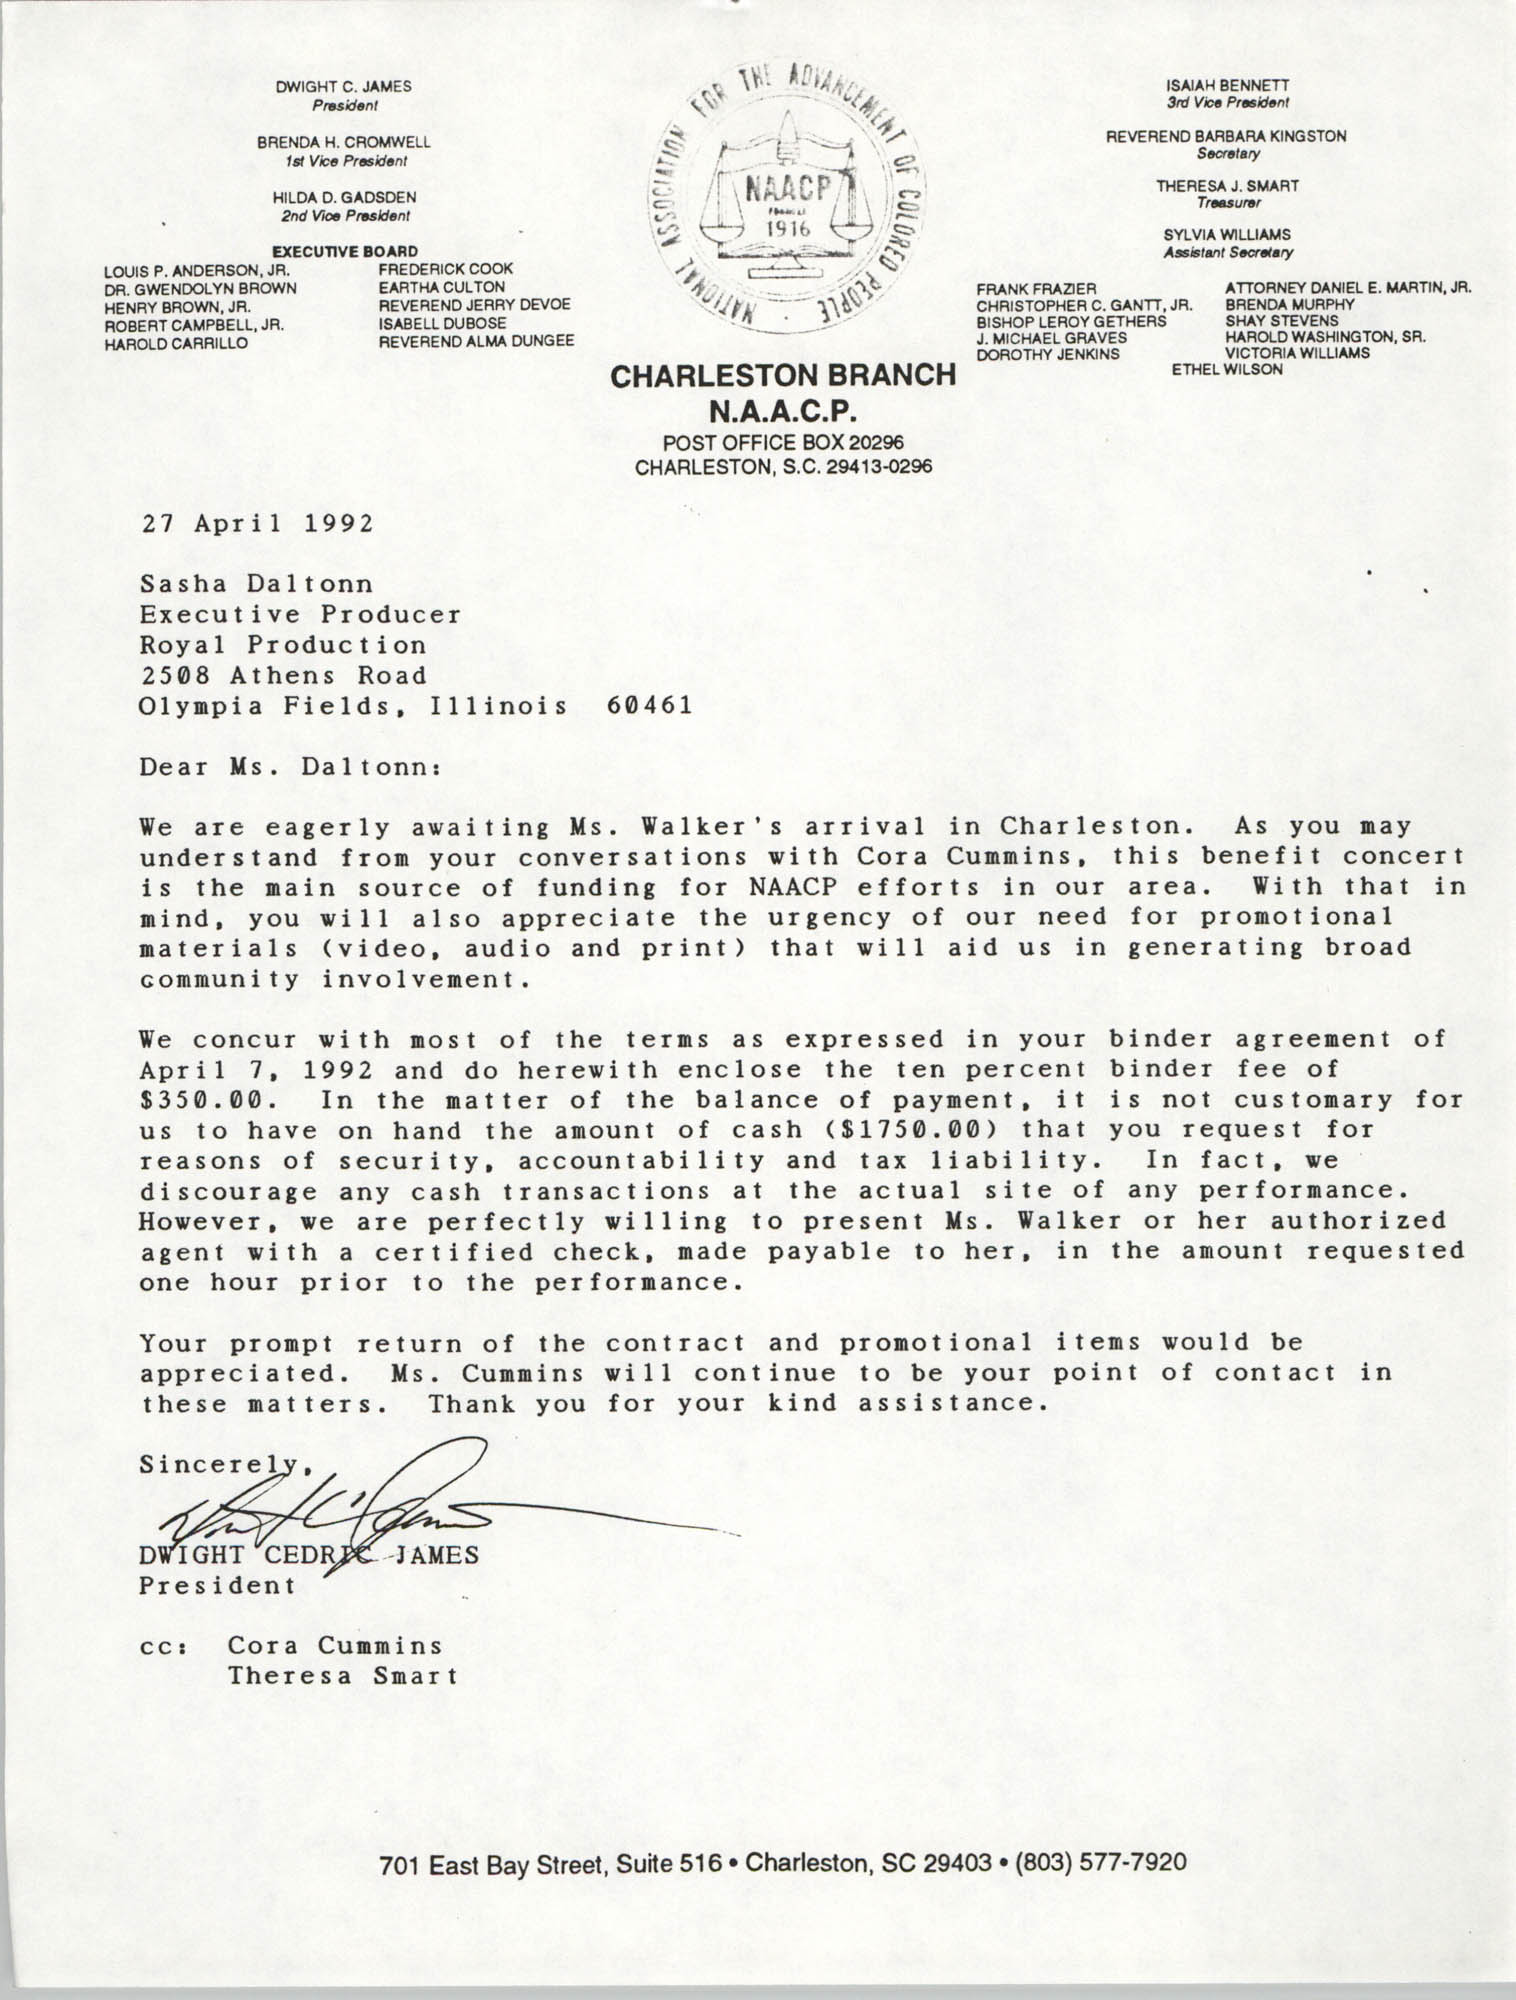 Letter from Dwight Cedric James to Sasha Dalton, April 27, 1992